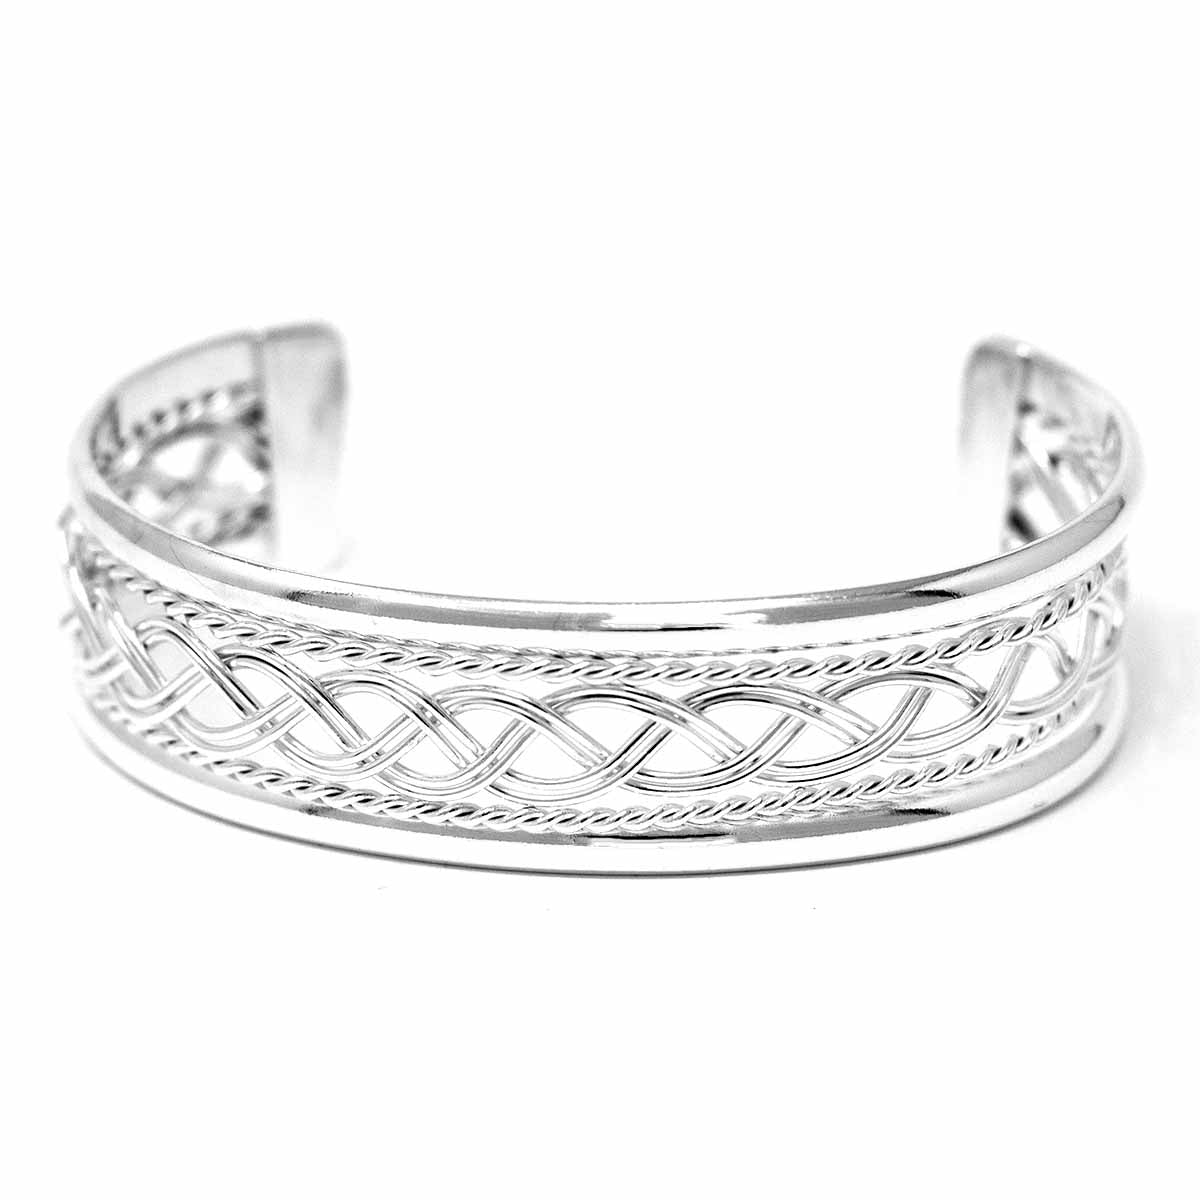 Silver Overlay Cuff Braided Design